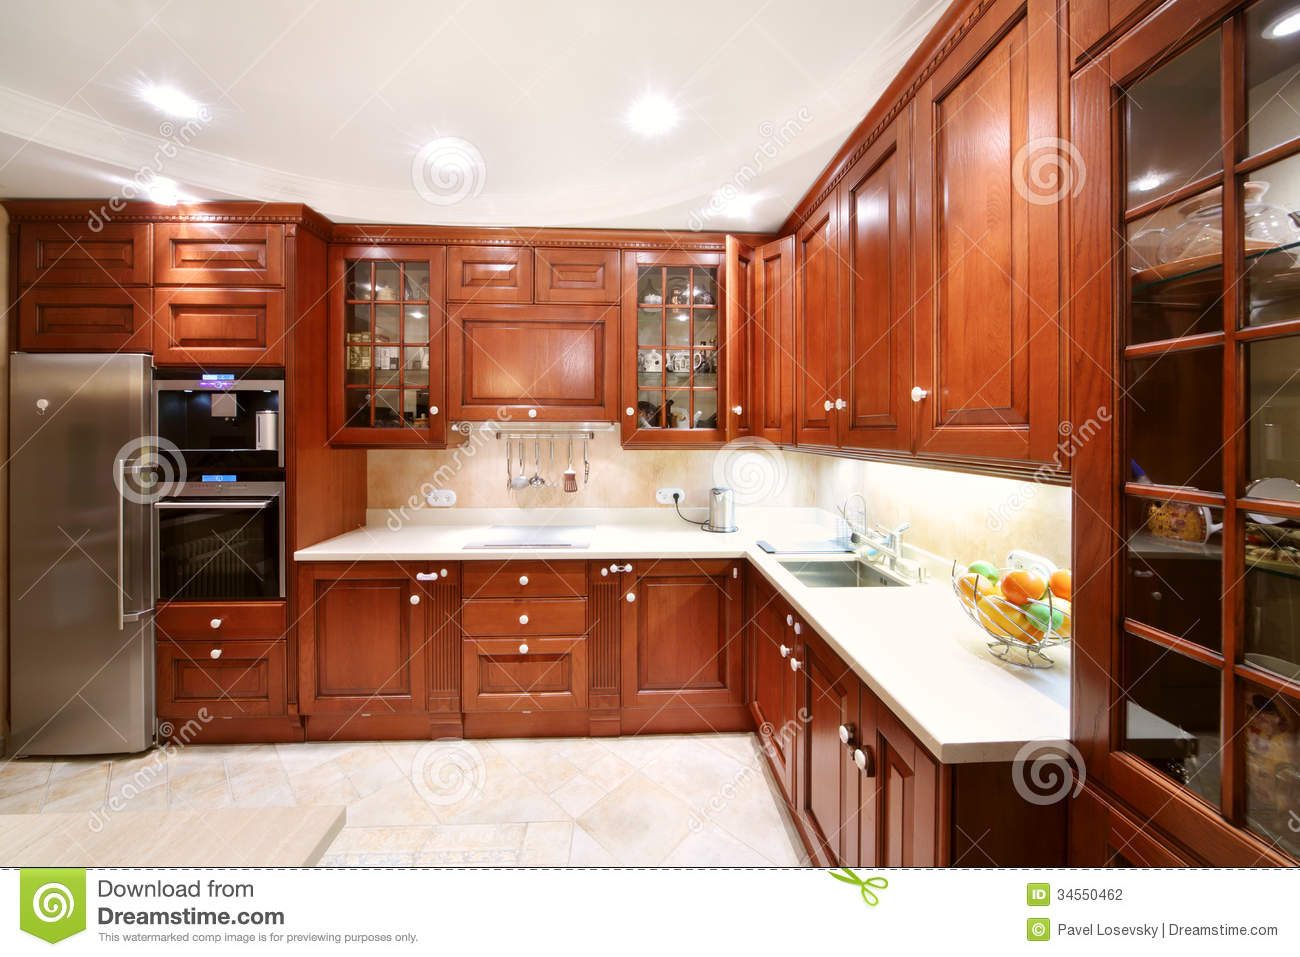 Simple Wooden Kitchen Cupboards Countertops Refrigerator Stock Photography Image 34550462